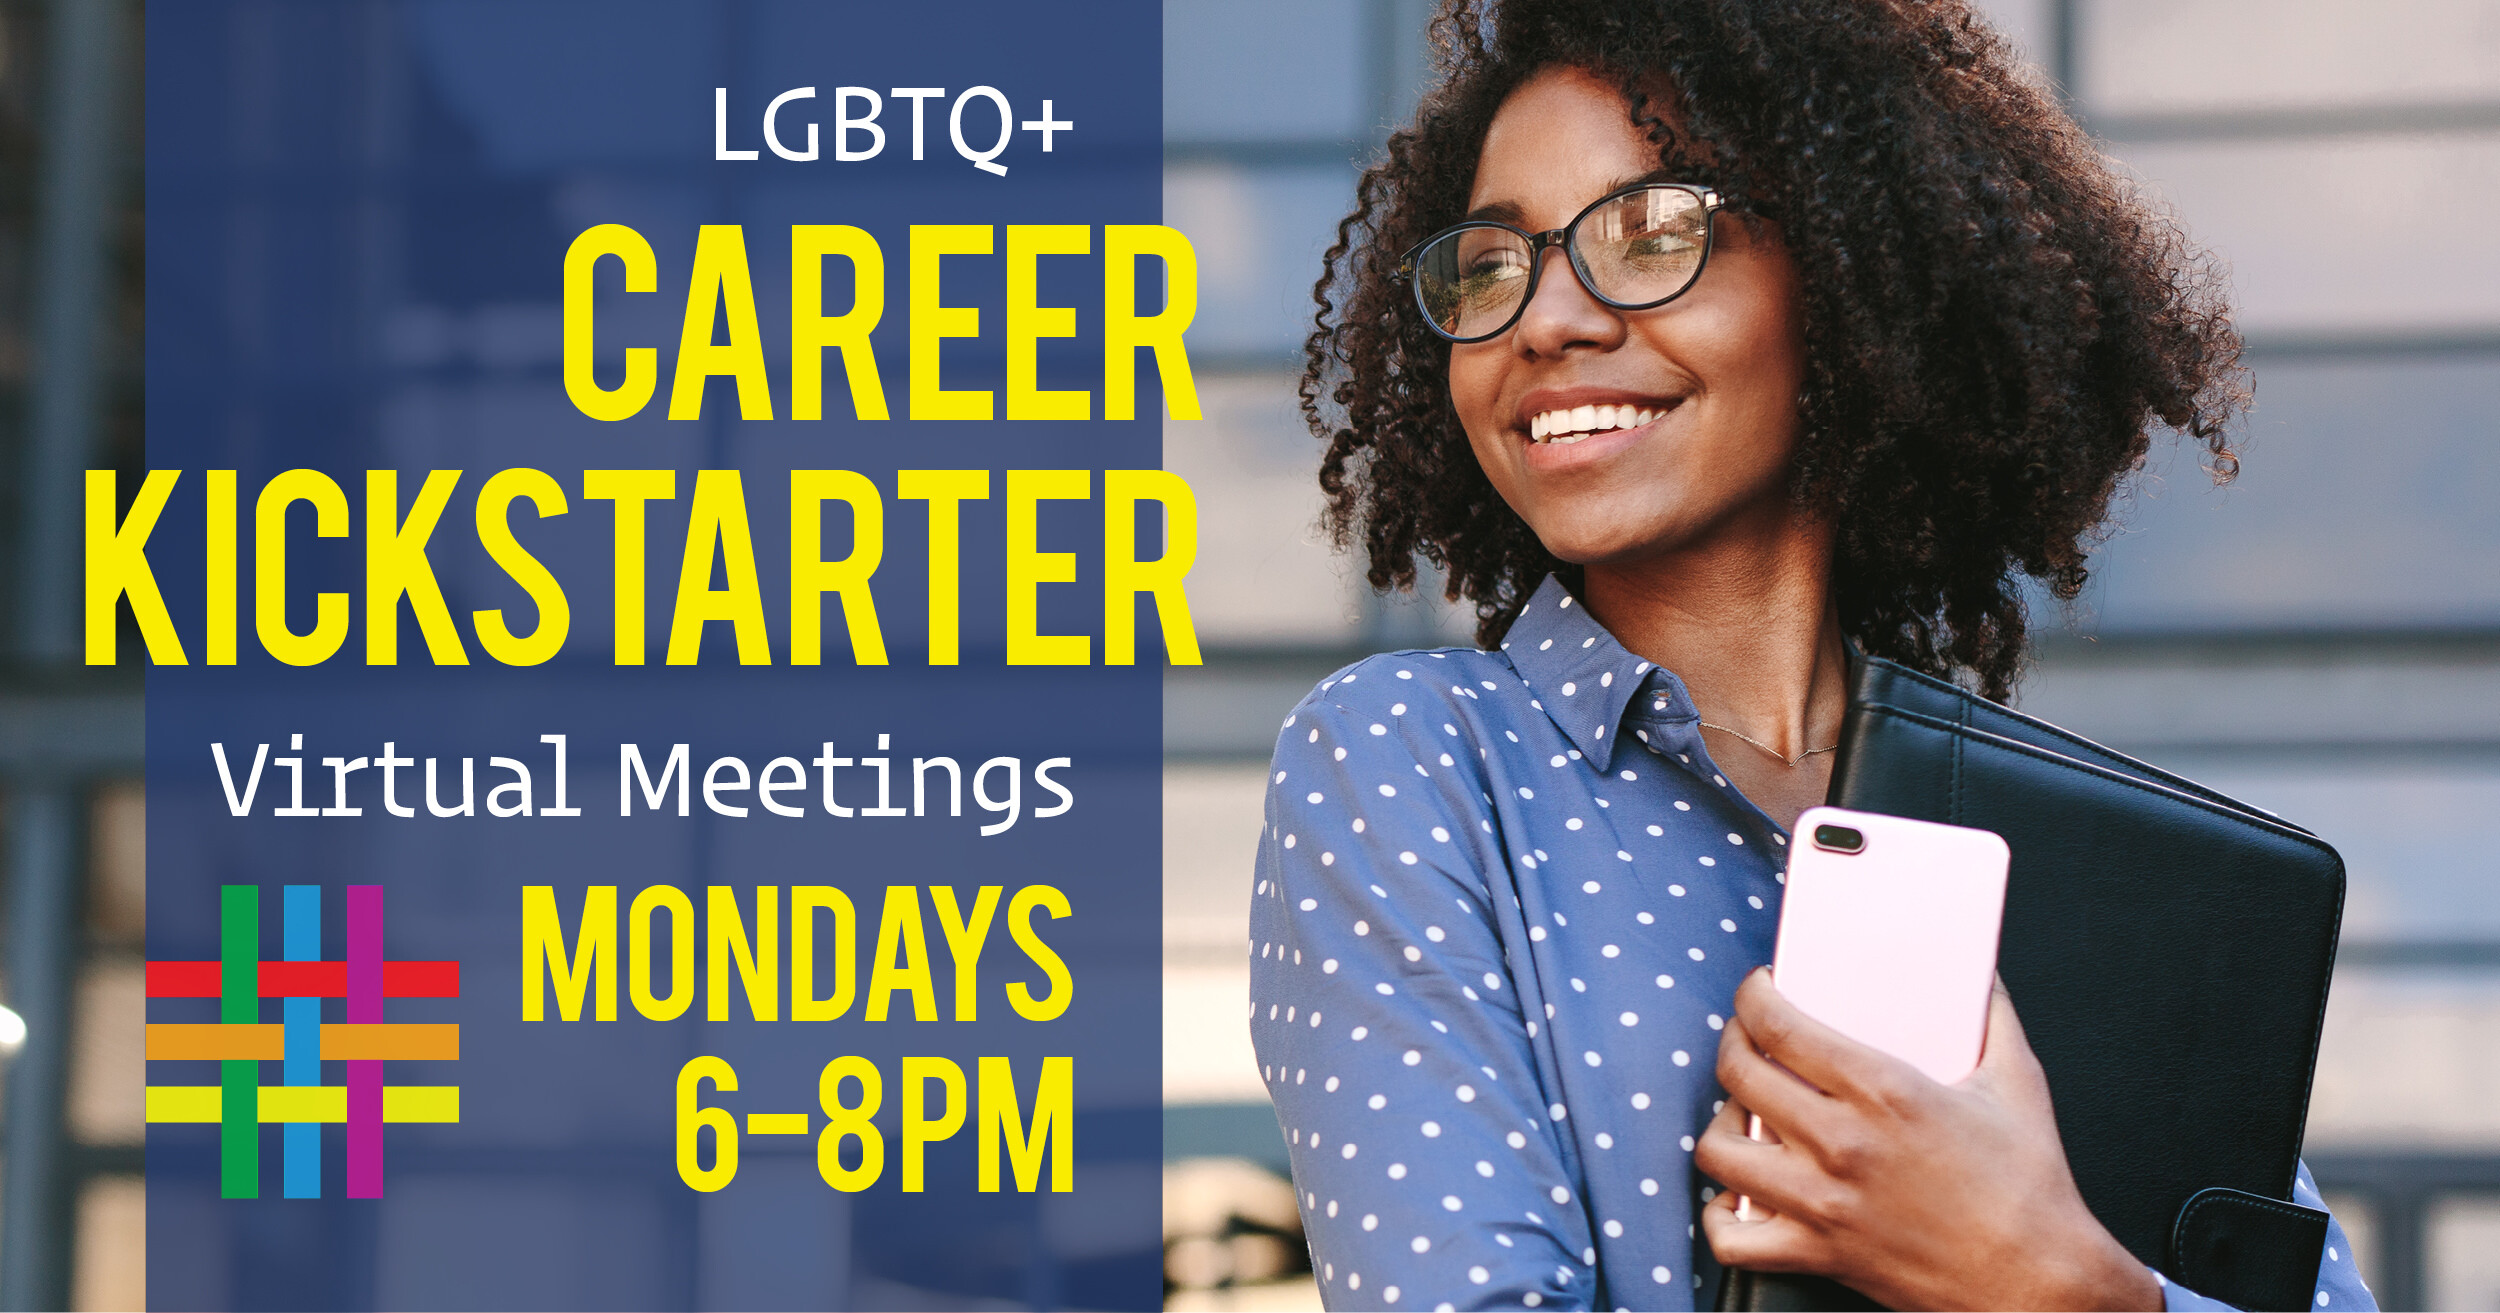 VIRTUAL: LGBTQ+ Career Kickstarter